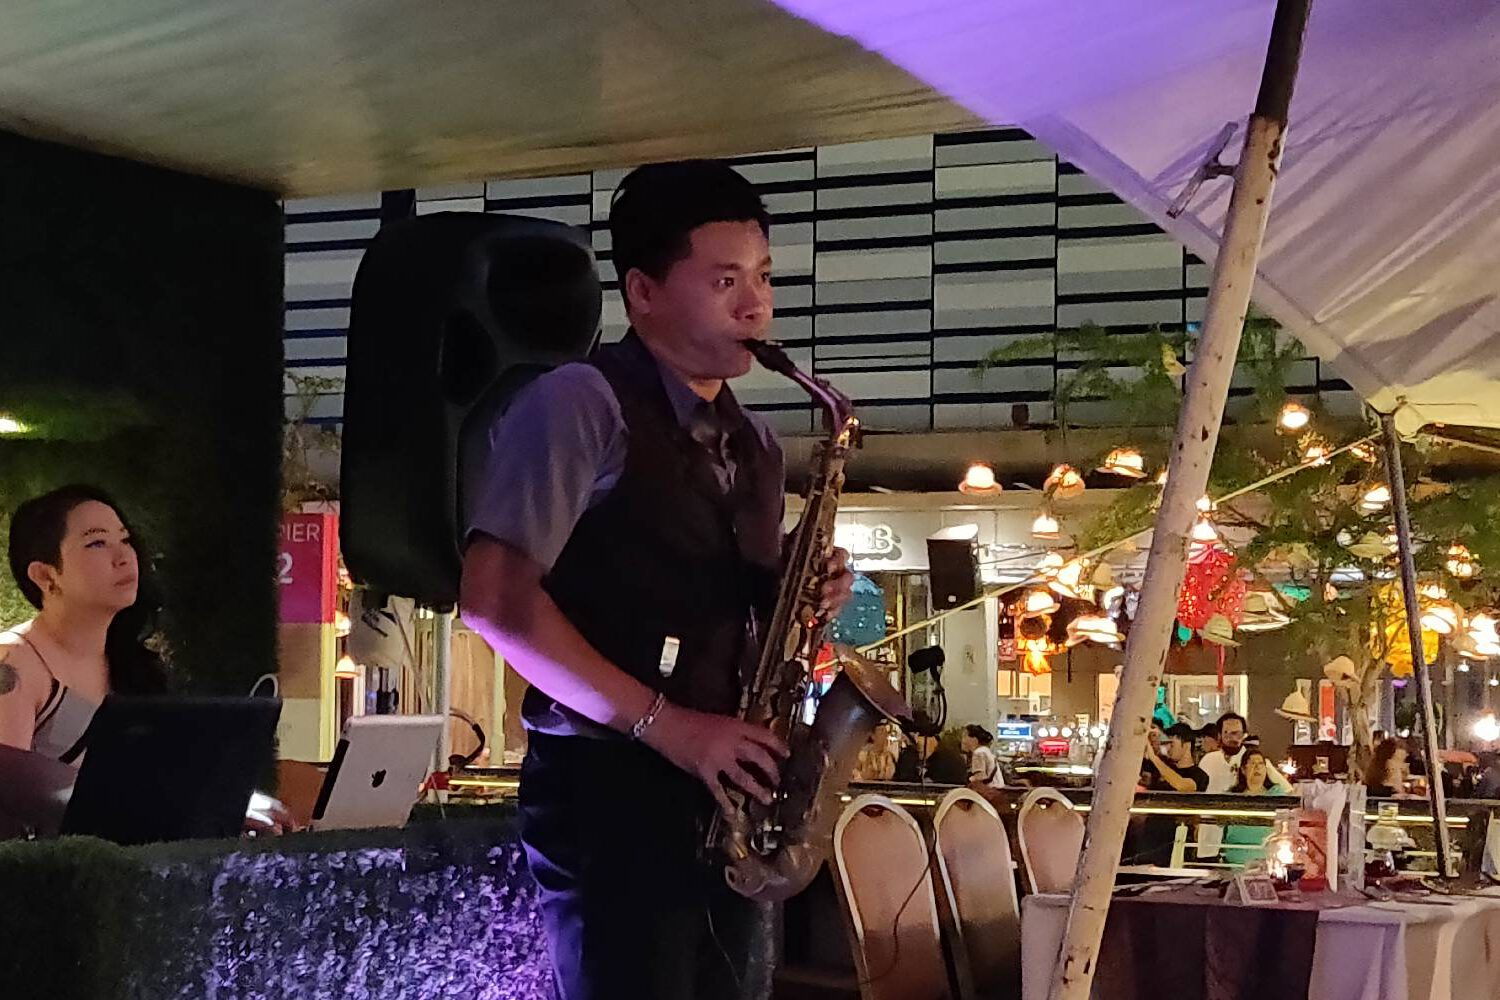 Performance saxophone player for guests